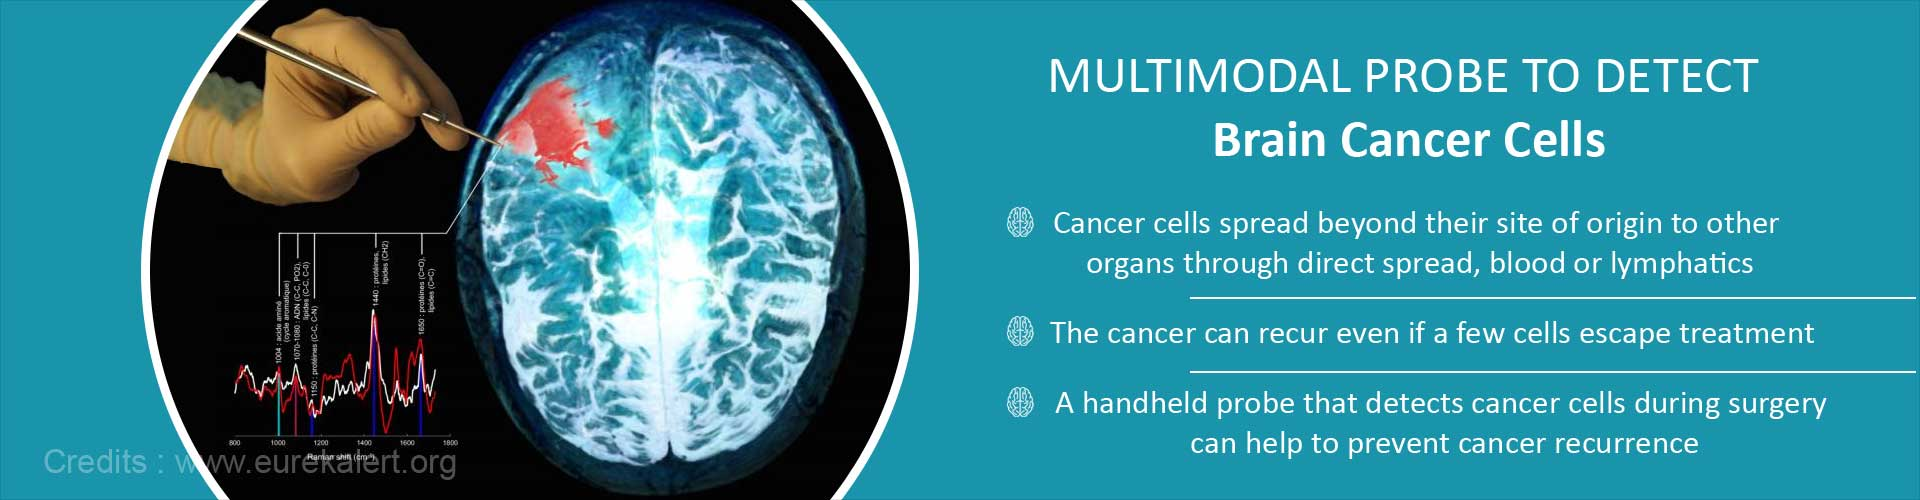 Multimodal probe to detect brain cancer cells - Cancer cells spread beyond their site of origin to other organs through direct spread, blood or lymphatics - The cancer can recur even if a few cells escape treatment - A handheld probe that detects cancer cells during surgery can help to prevent cancer recurrence